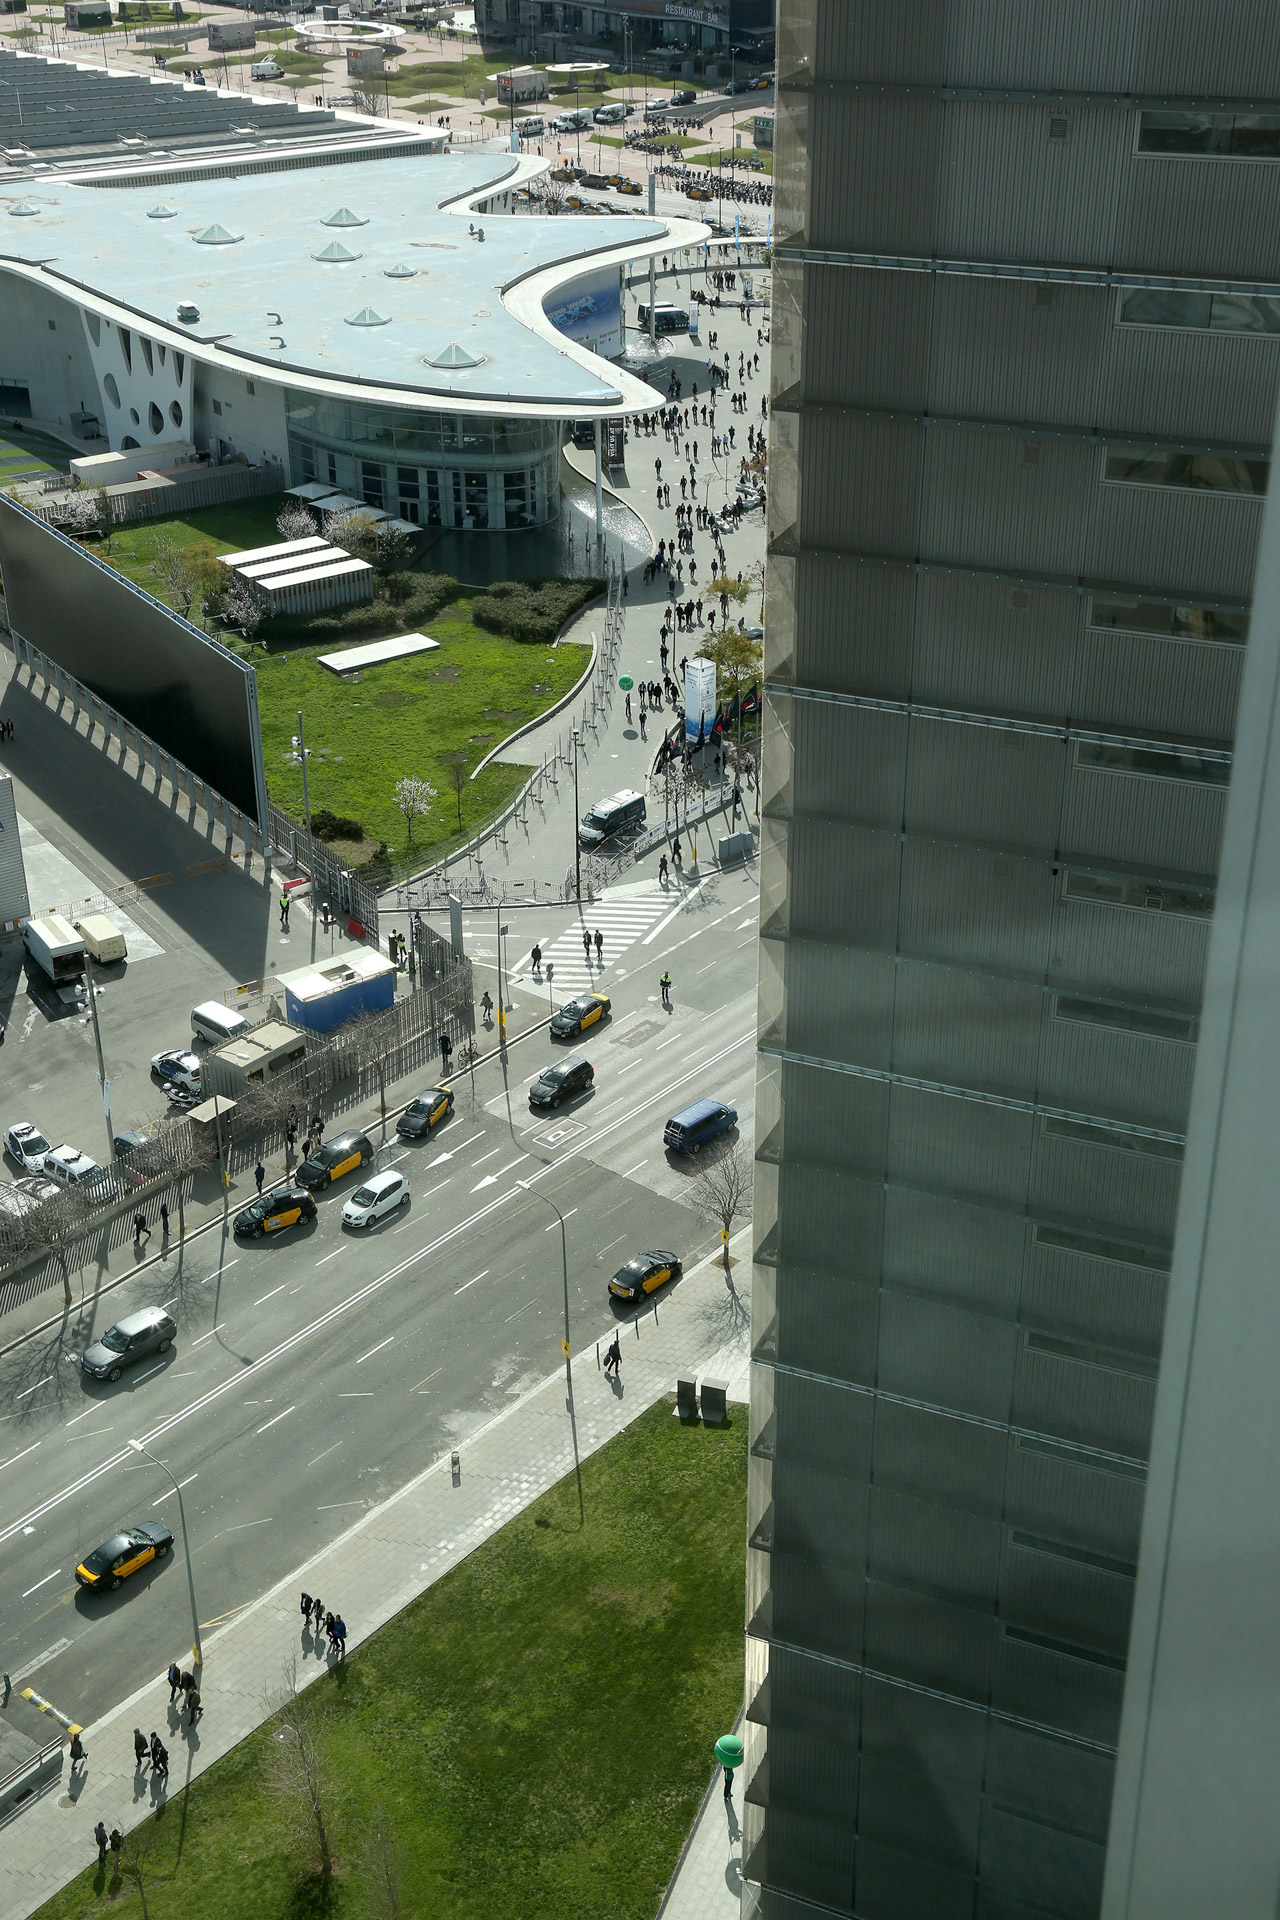 Fira Gran via view from the meeting area